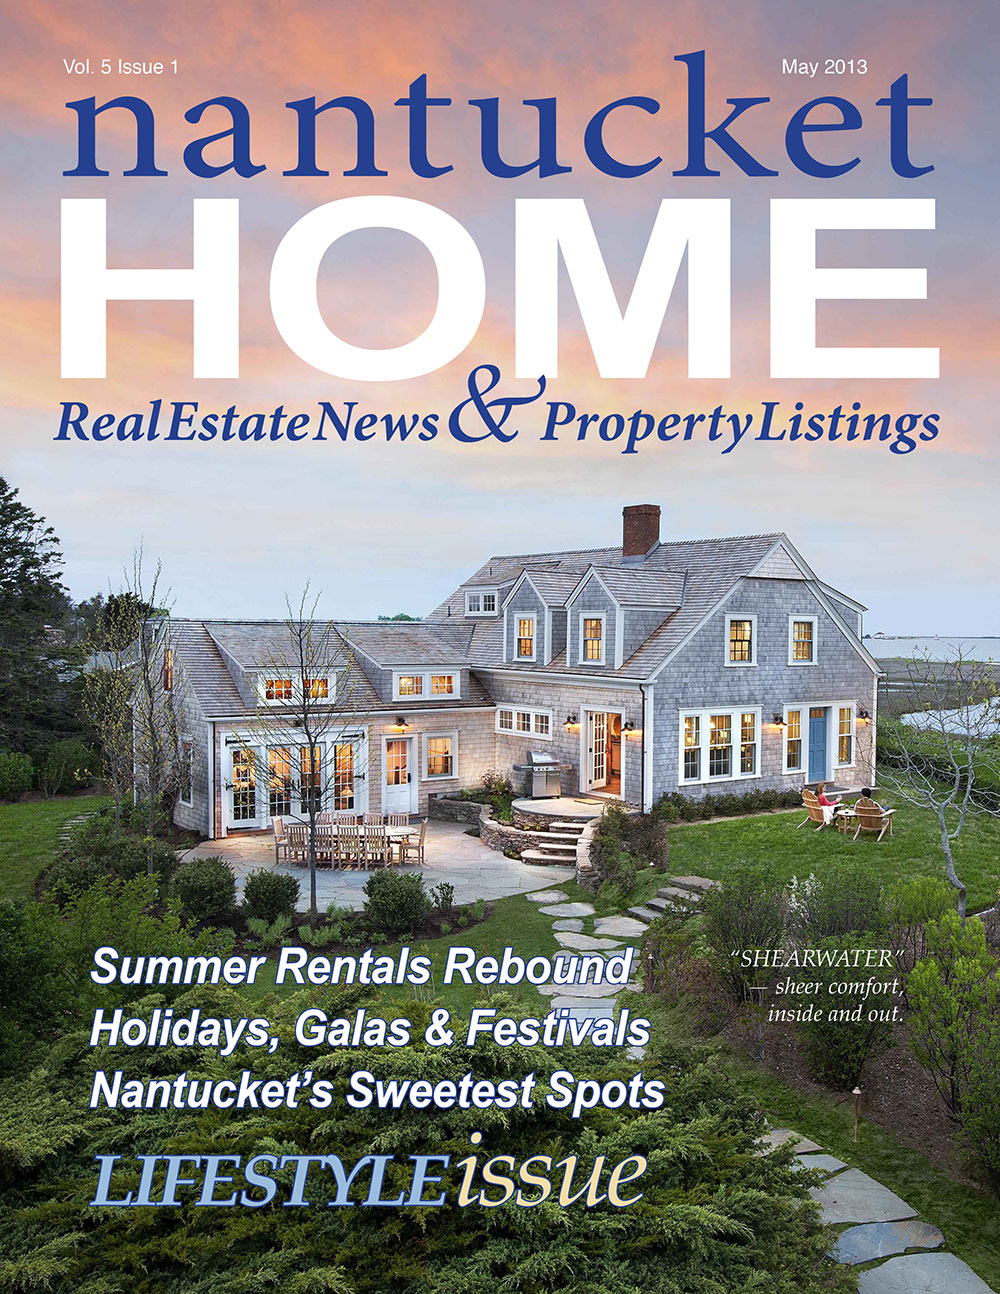 Cottage + Castle featured in Nantucket Home magazine